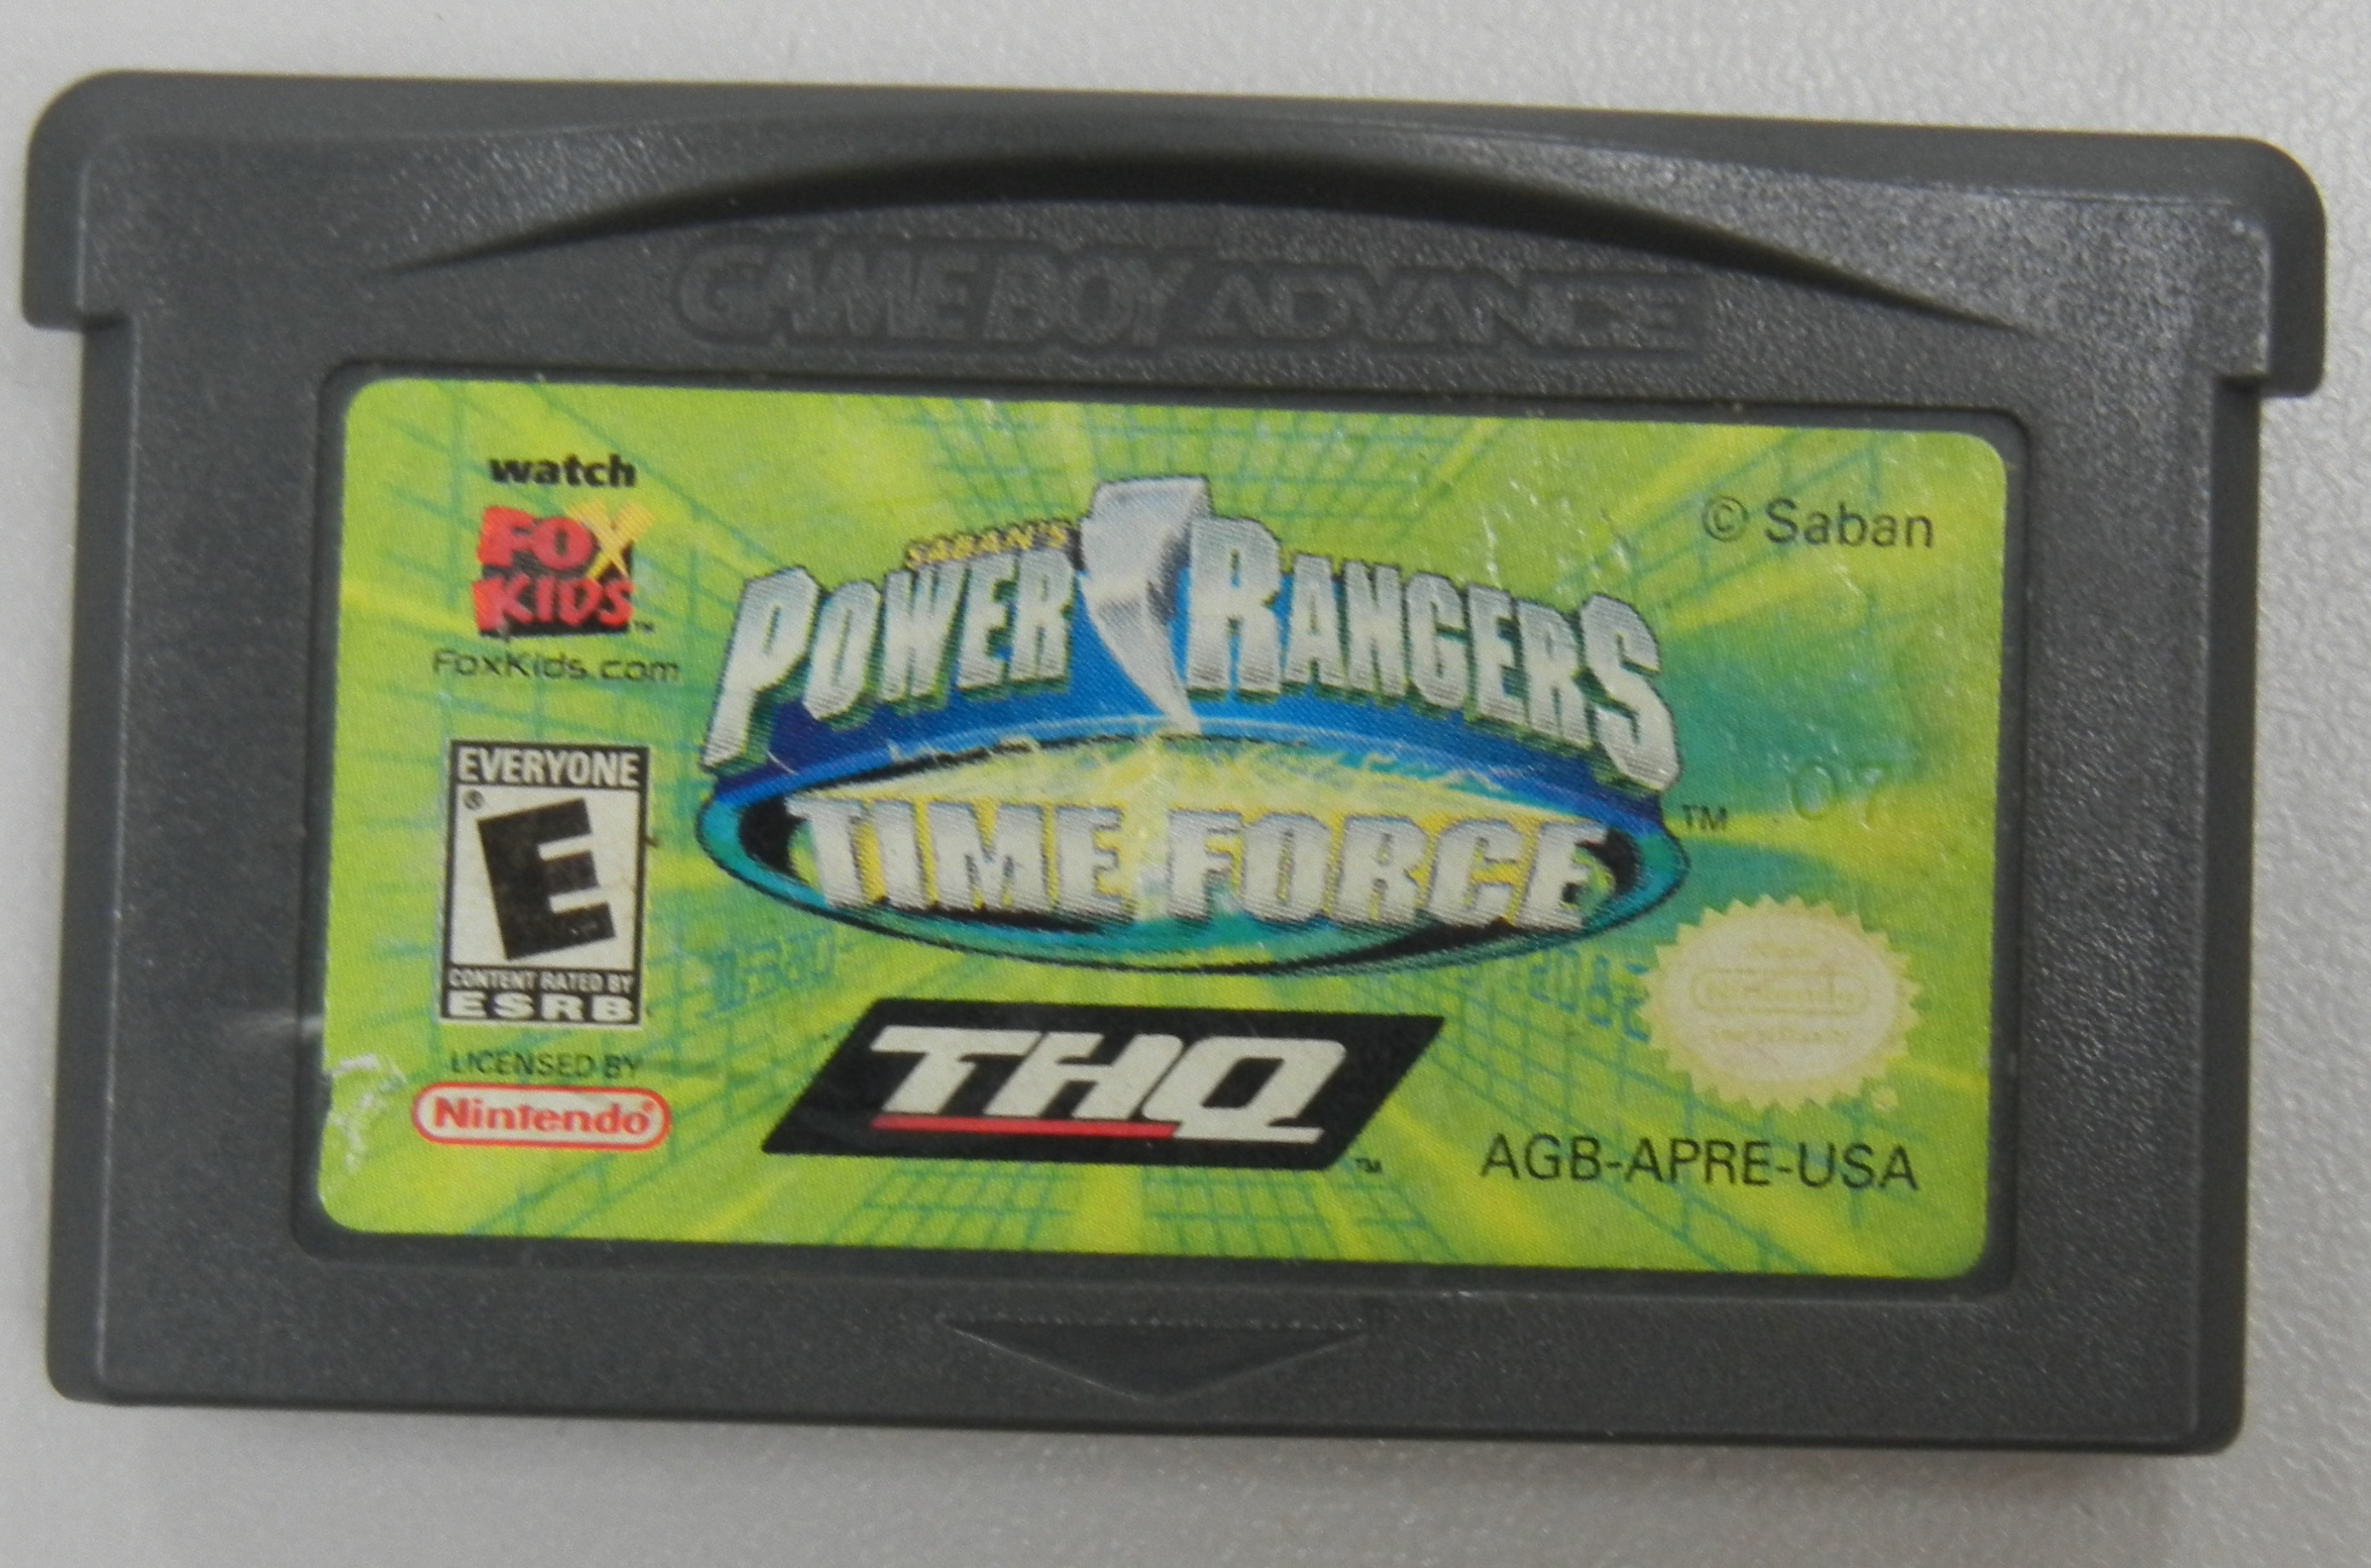 GAMEBOY ADVANCE POWER RANGERS TIME FORCE